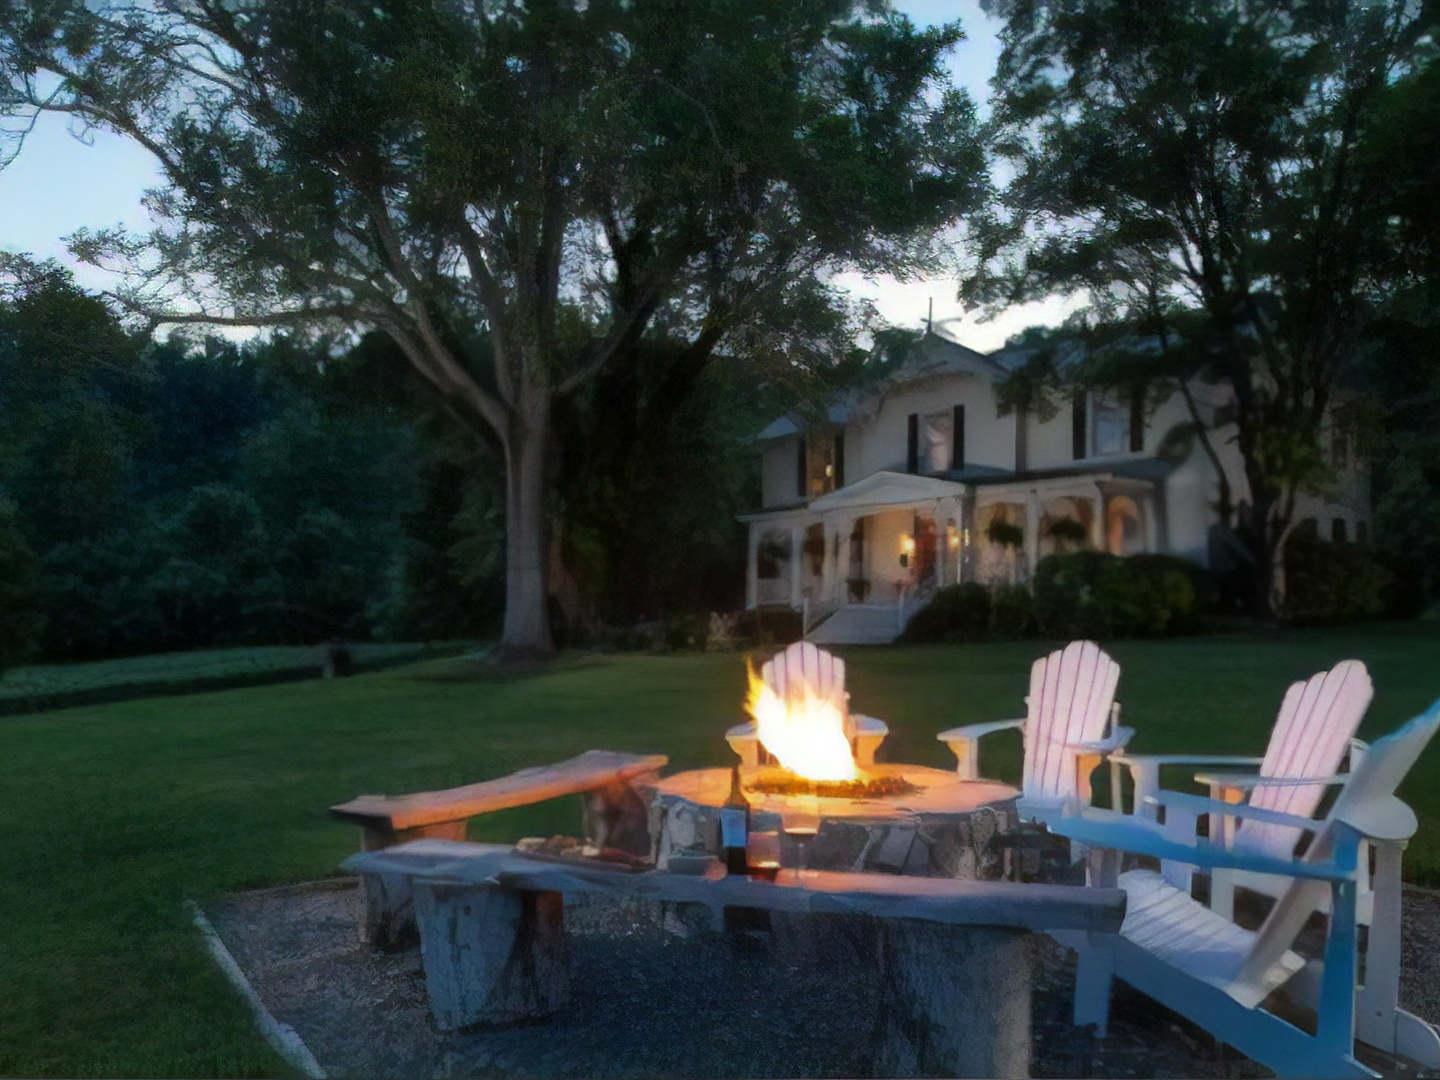 A person sitting at a picnic table at Orchard House Bed & Breakfast.